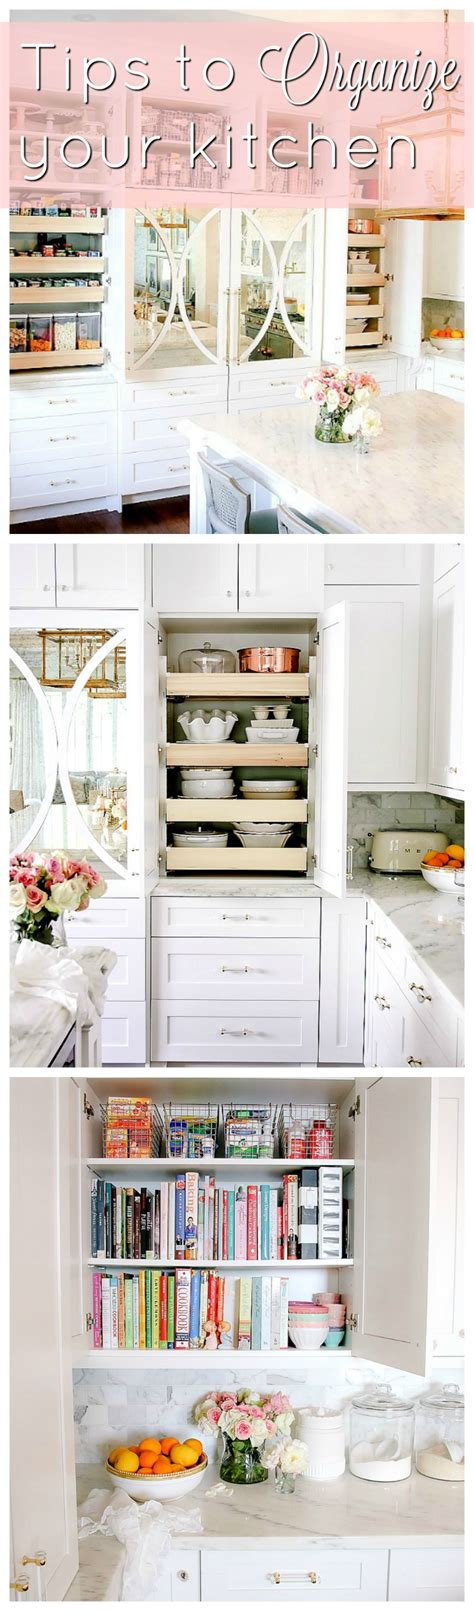 tips for organizing your kitchen cleaning kitchen cabinet organizing tips randi 8537